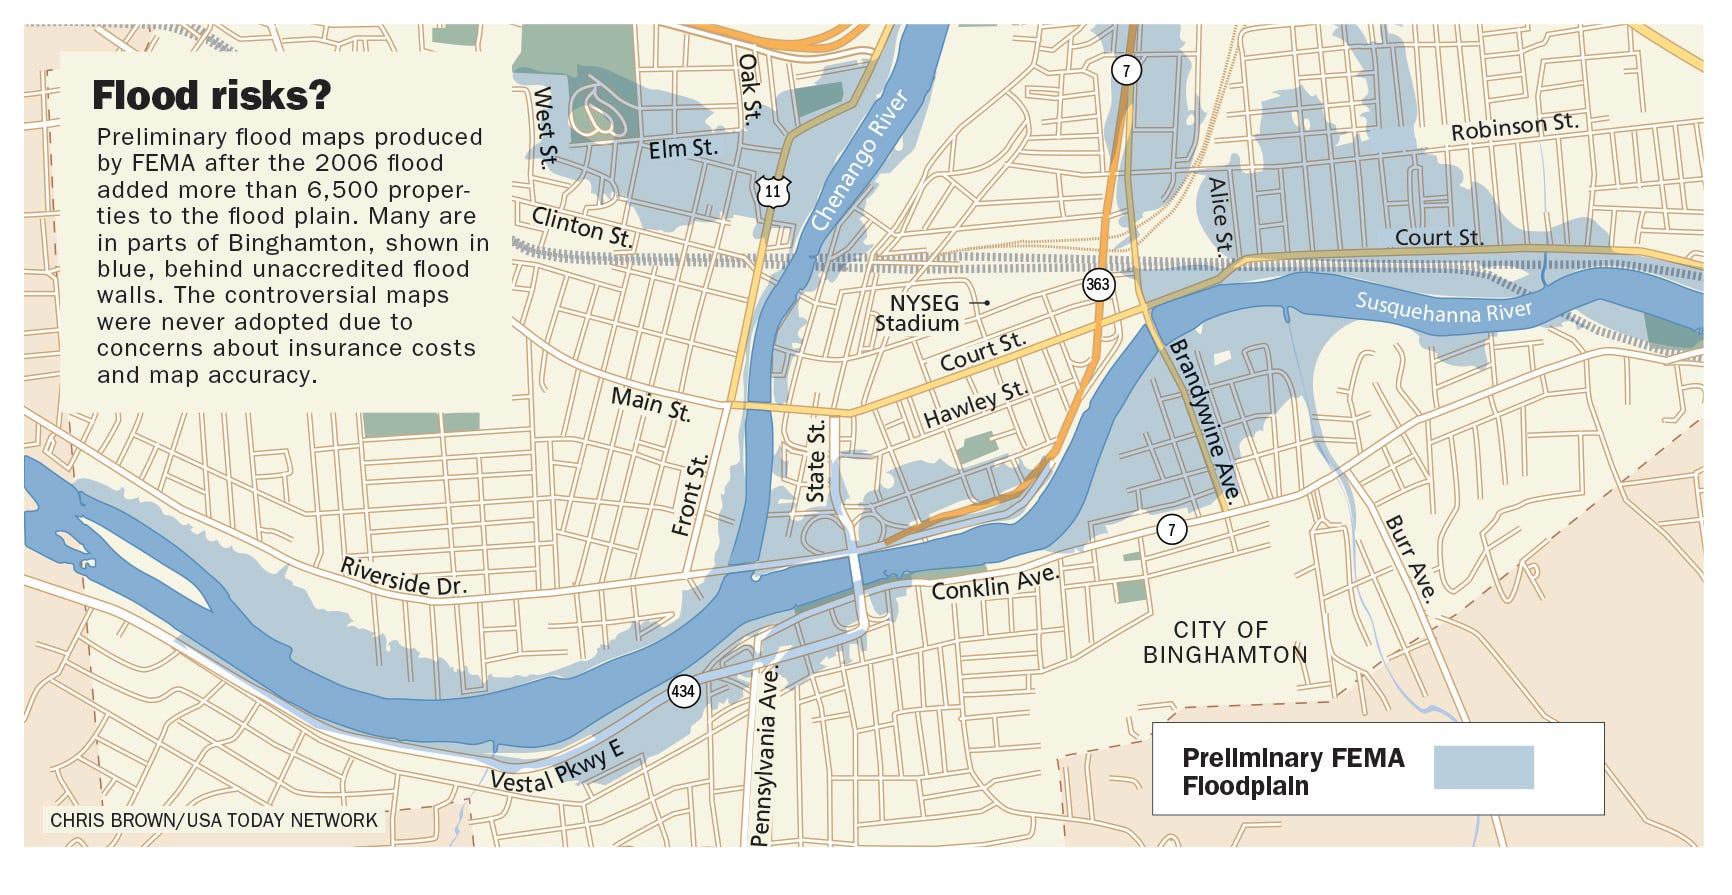 Binghamton Flood Maps Flood Wall And Levees May Be Inadequate - After the earthquake new map of us